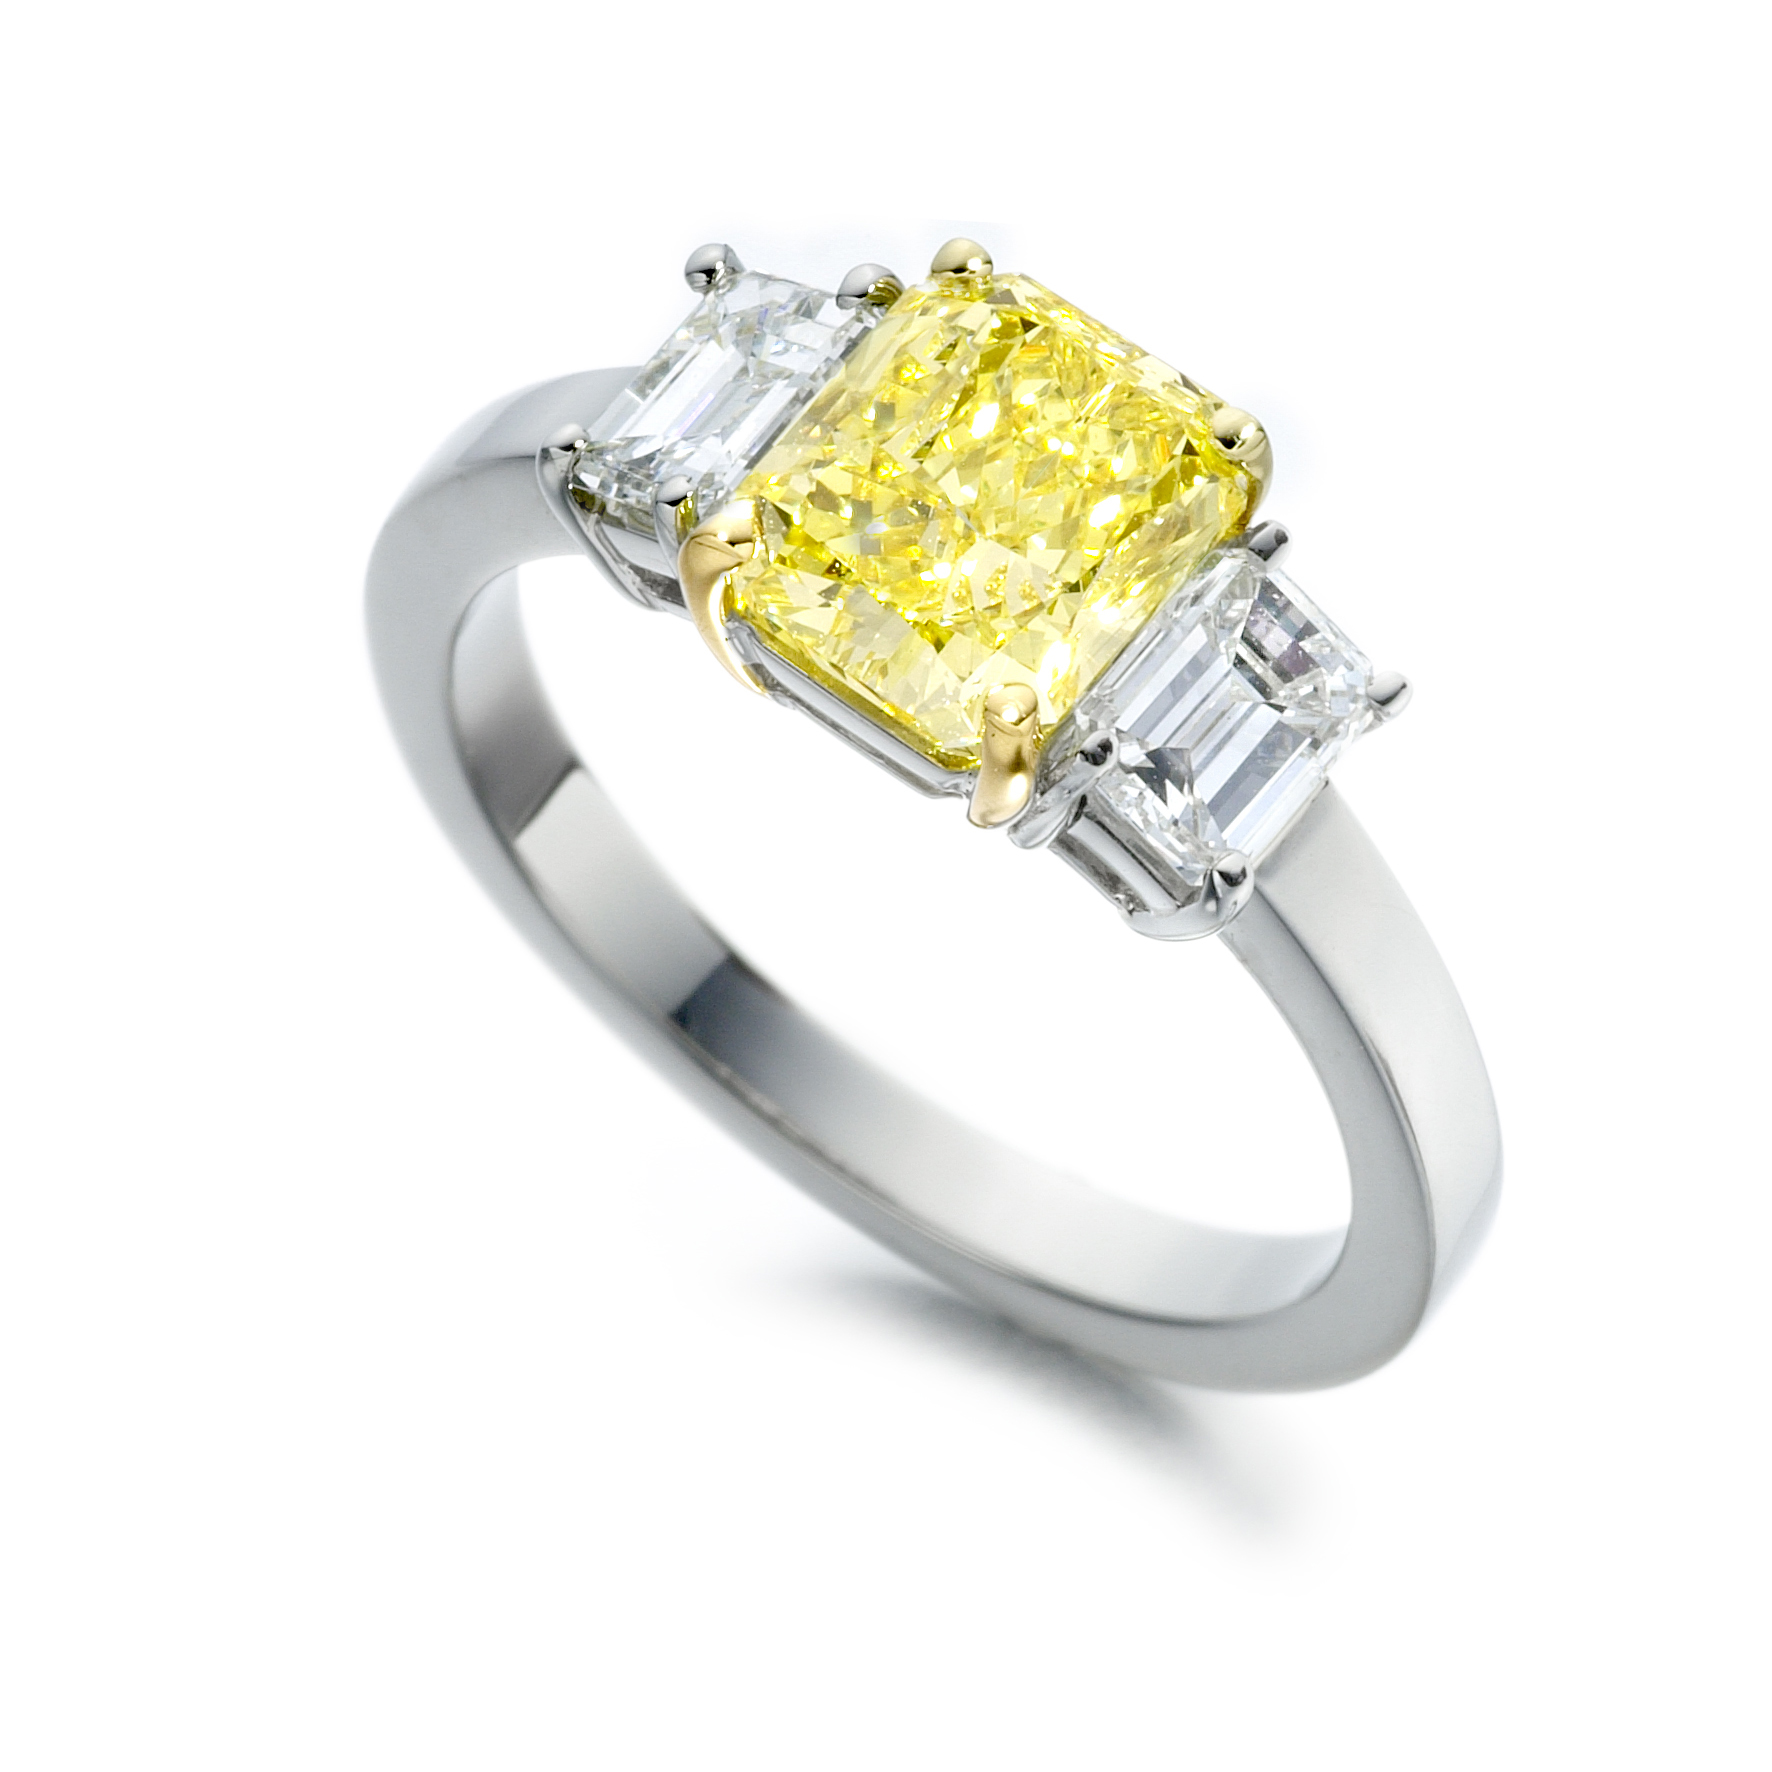 Intense yellow diamond ring